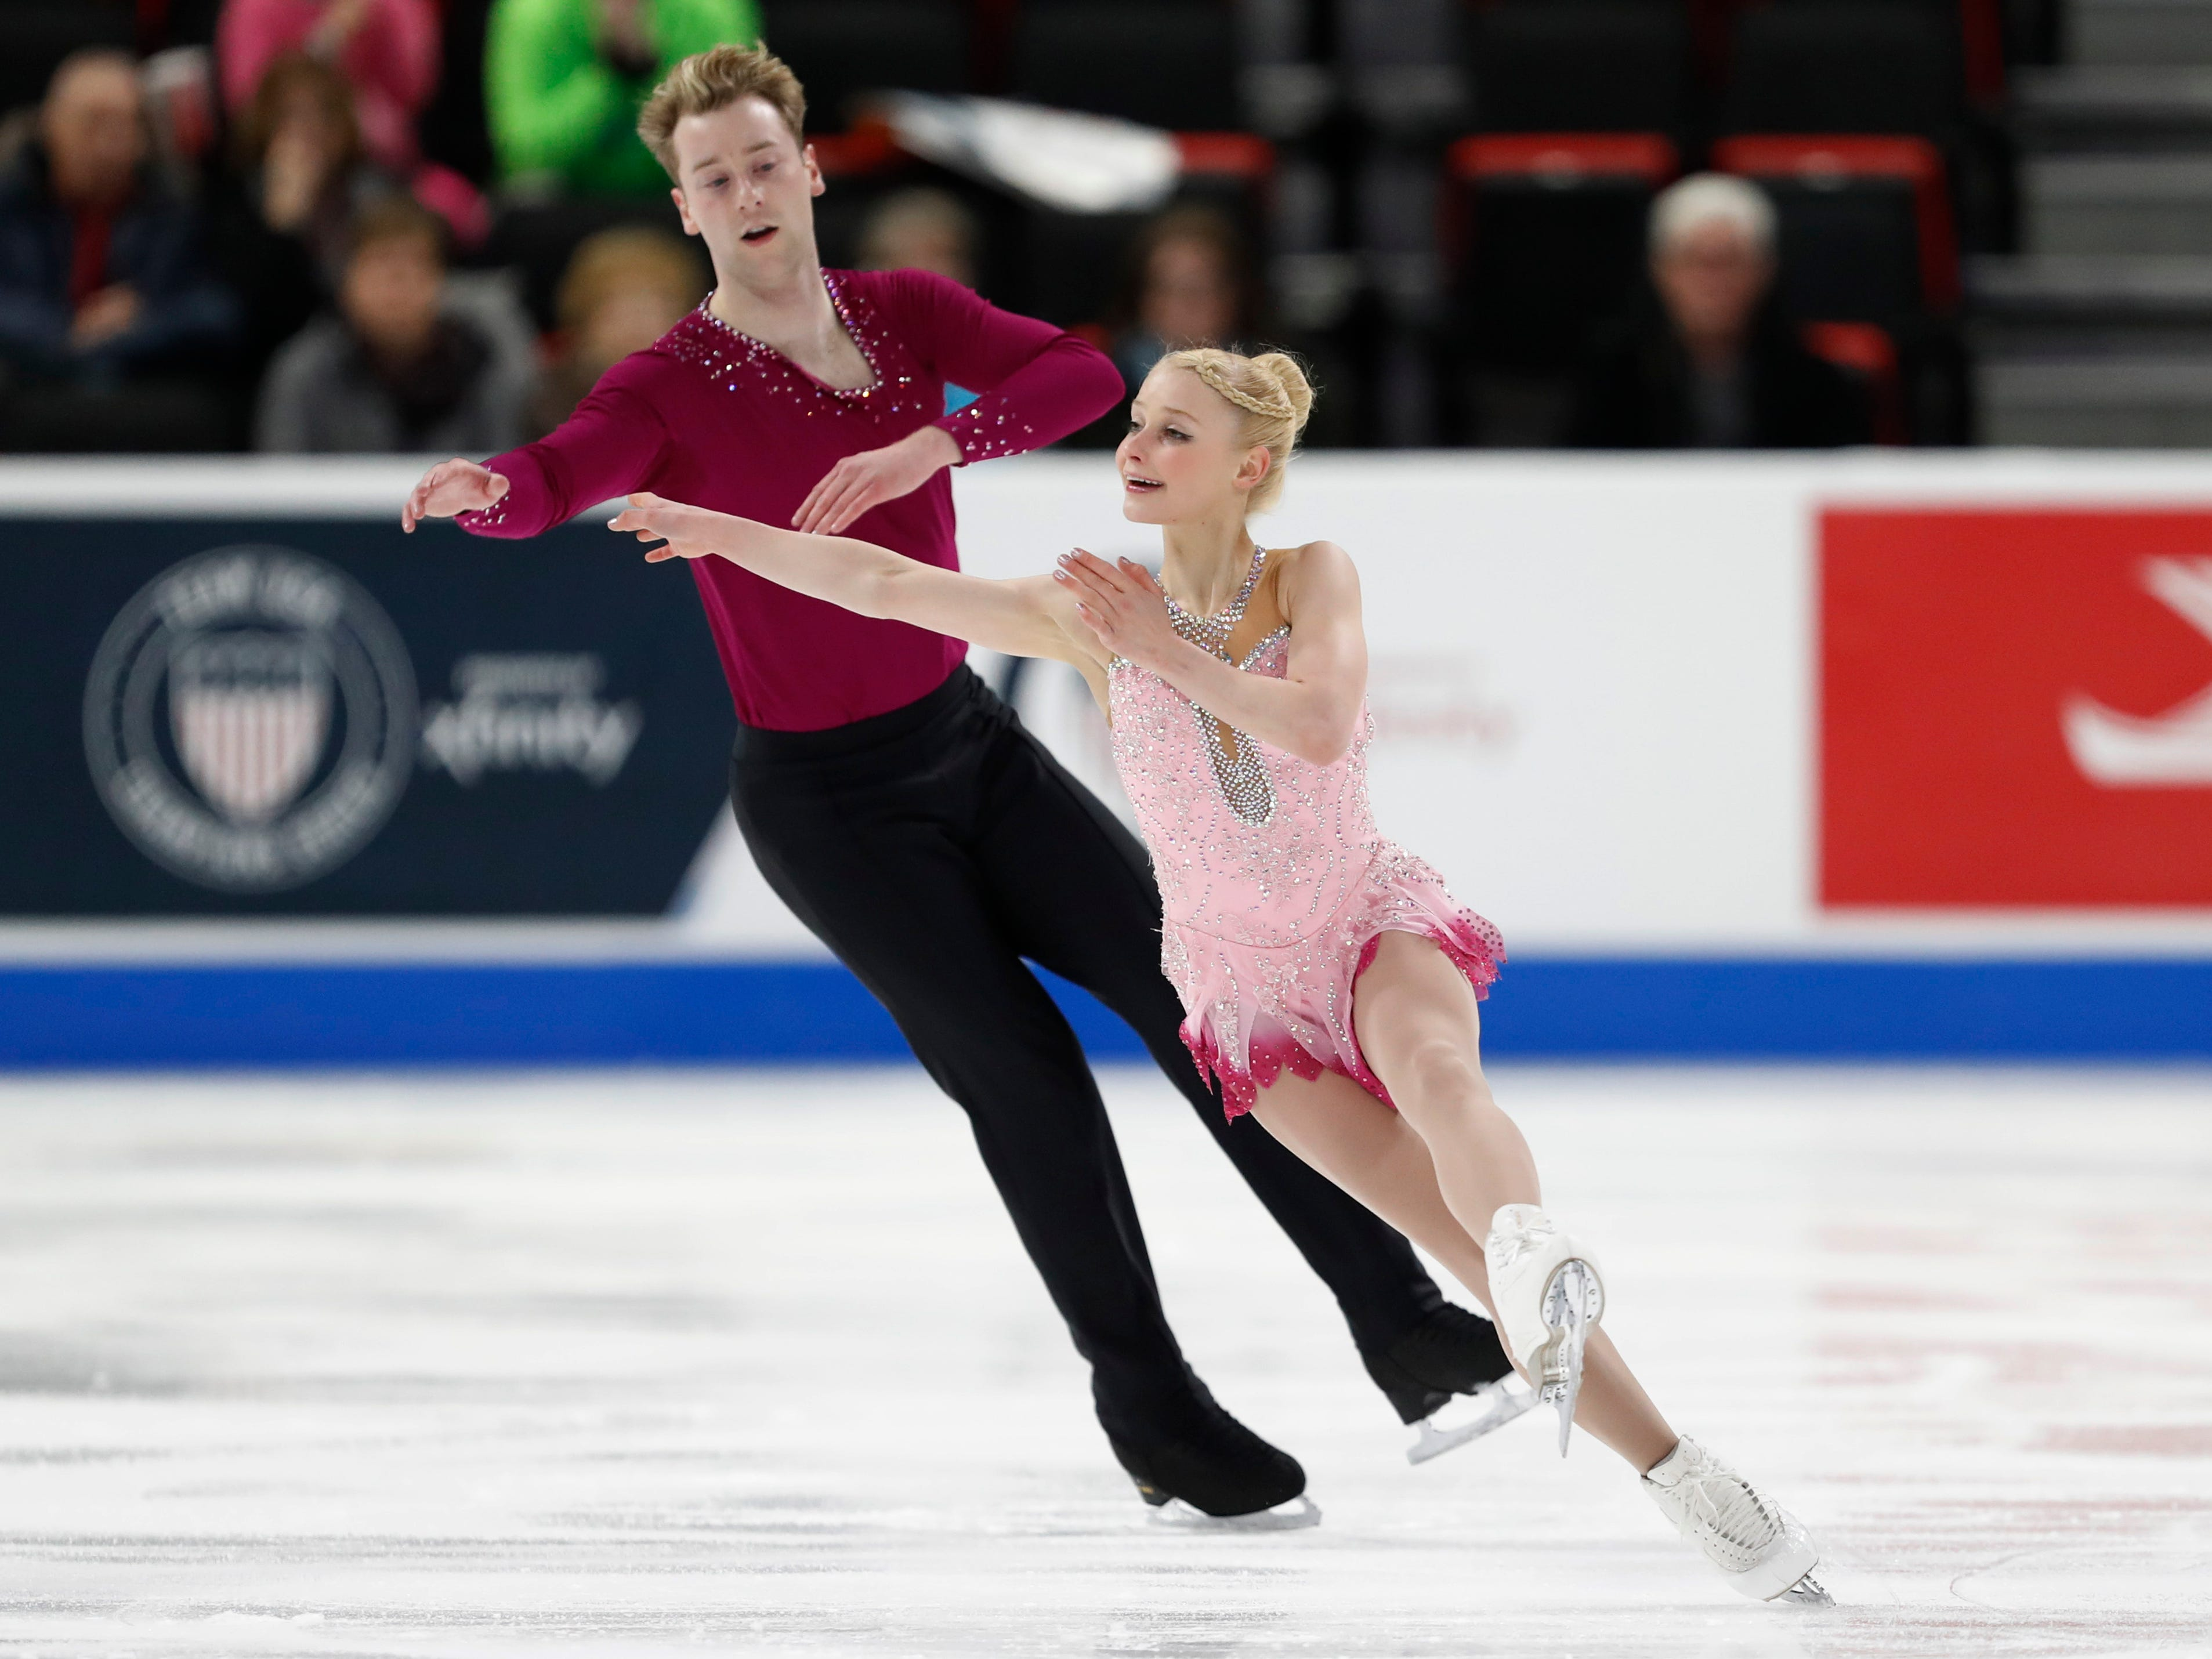 Nica Digerness and Danny Neudecker perform in the pairs short program.